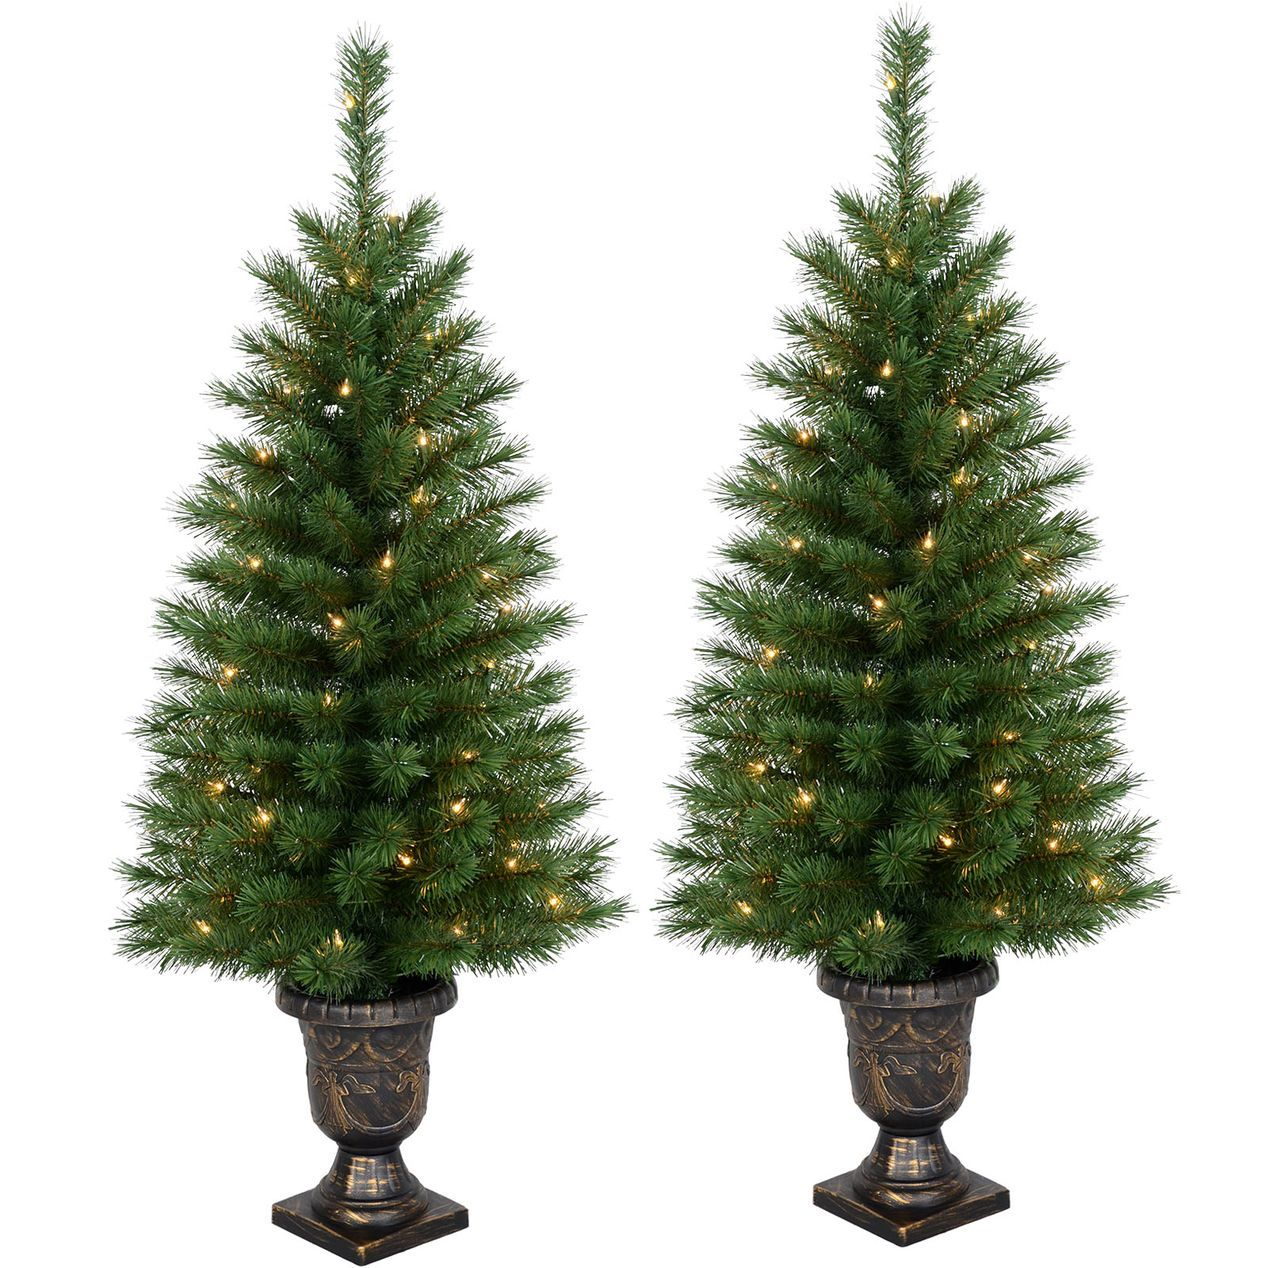 add some holiday cheer to your entryway this season with the pre lit porch christmas trees pre lit with 50 clear lights maximum diameter of 19 inches - Pre Lit Outdoor Christmas Tree